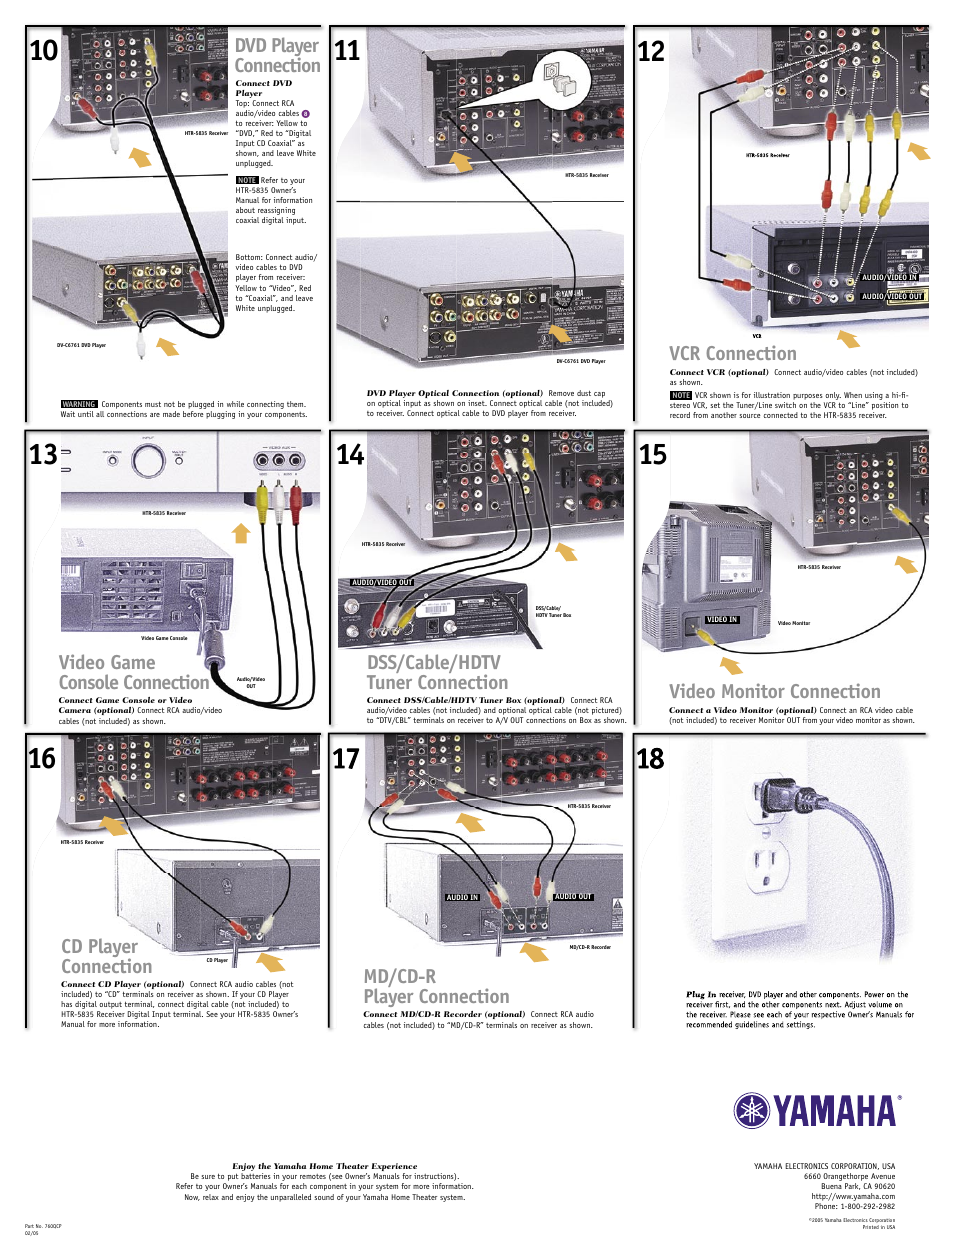 Dvd player connection, Vcr connection, Dss/cable/hdtv tuner ...